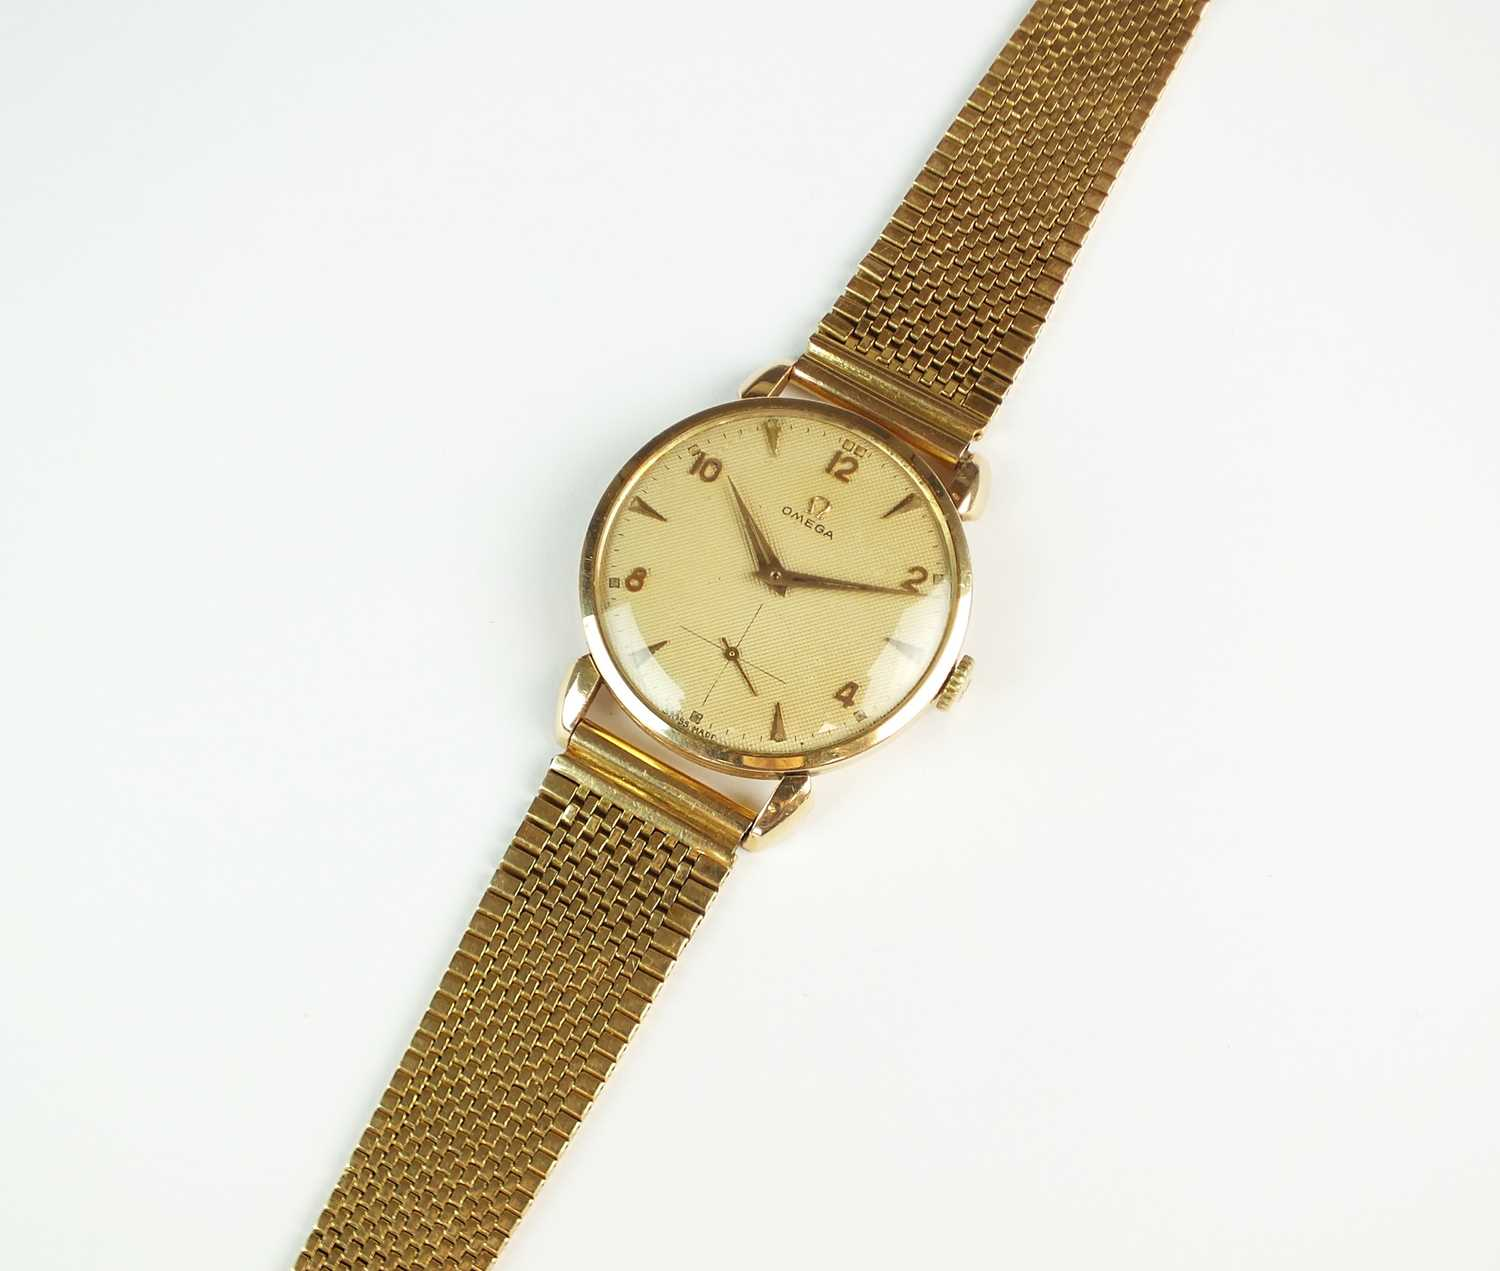 A Gentleman's gold plated Omega wristwatch with yellow metal bracelet